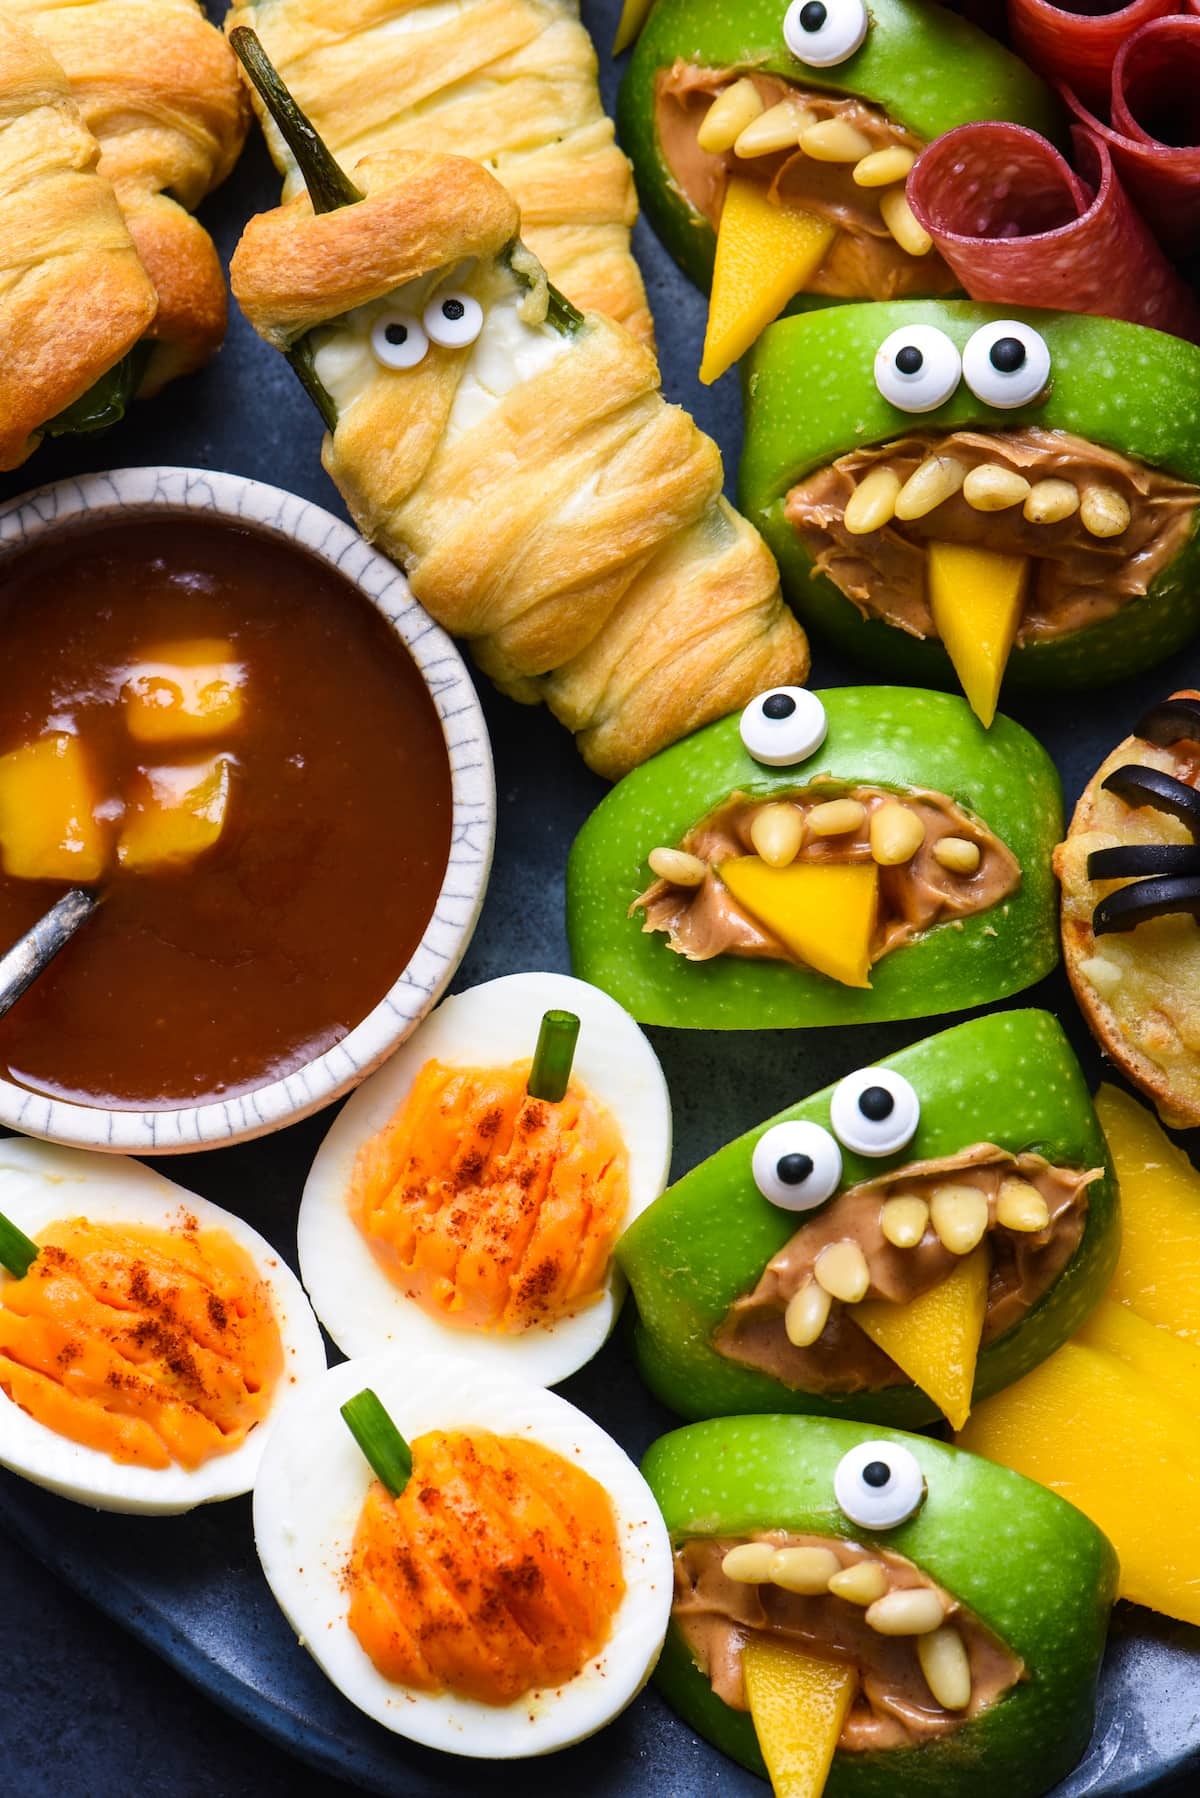 Easy Halloween Party Food 2 - Ghoulishly Good! Halloween Party Recipes and Ideas